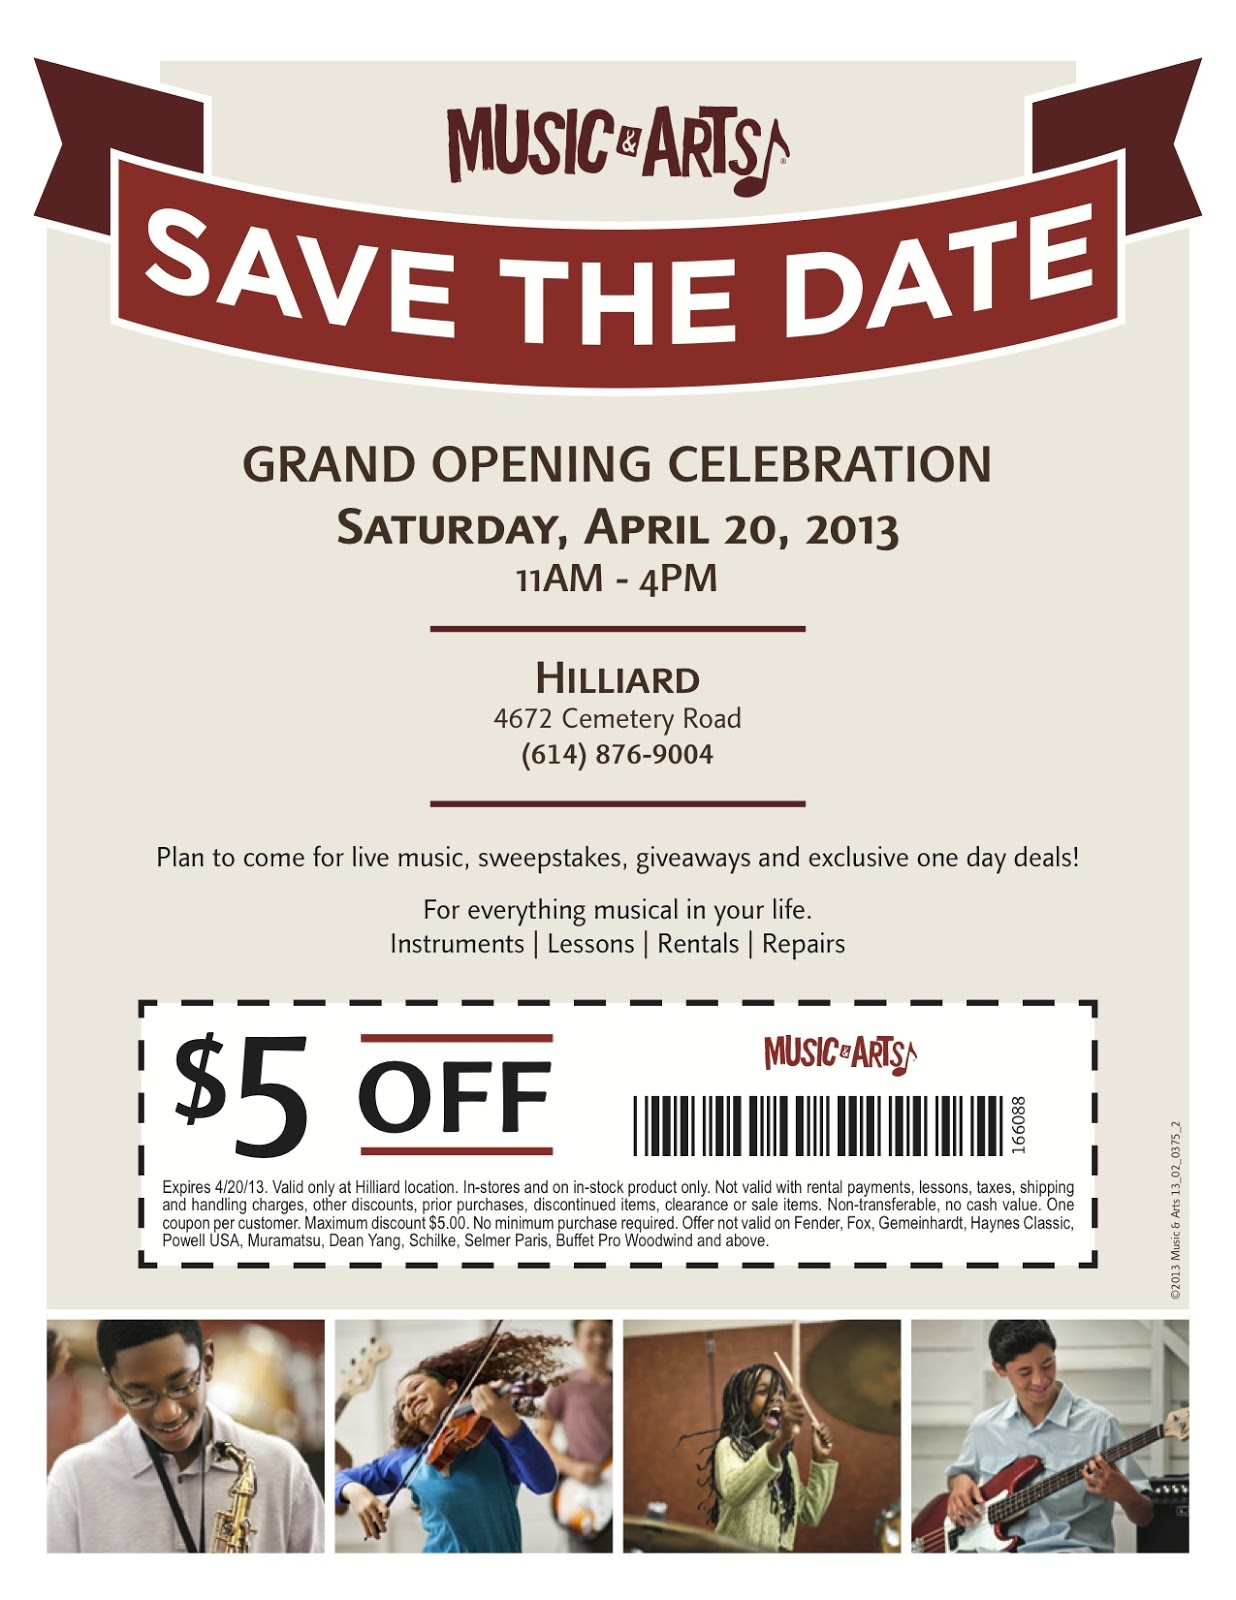 Grand Opening Flyer Template - Save the date flyer template